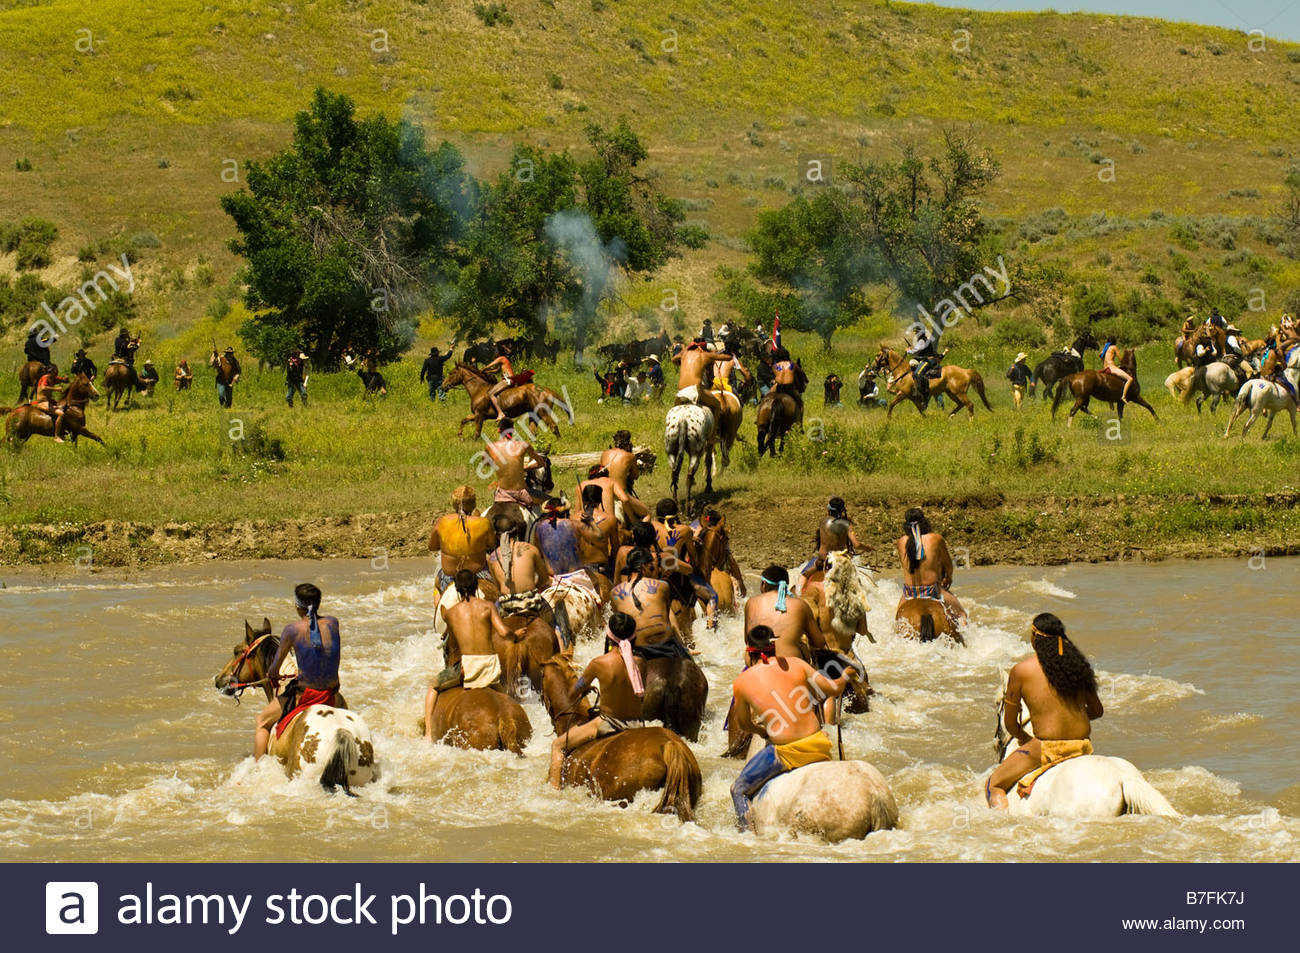 custer and the battle of little bighorn In 1876, general custer and members of several plains indian tribes, including crazy horse and chief gall, battled in eastern montana in what would become known as custer's last stand.